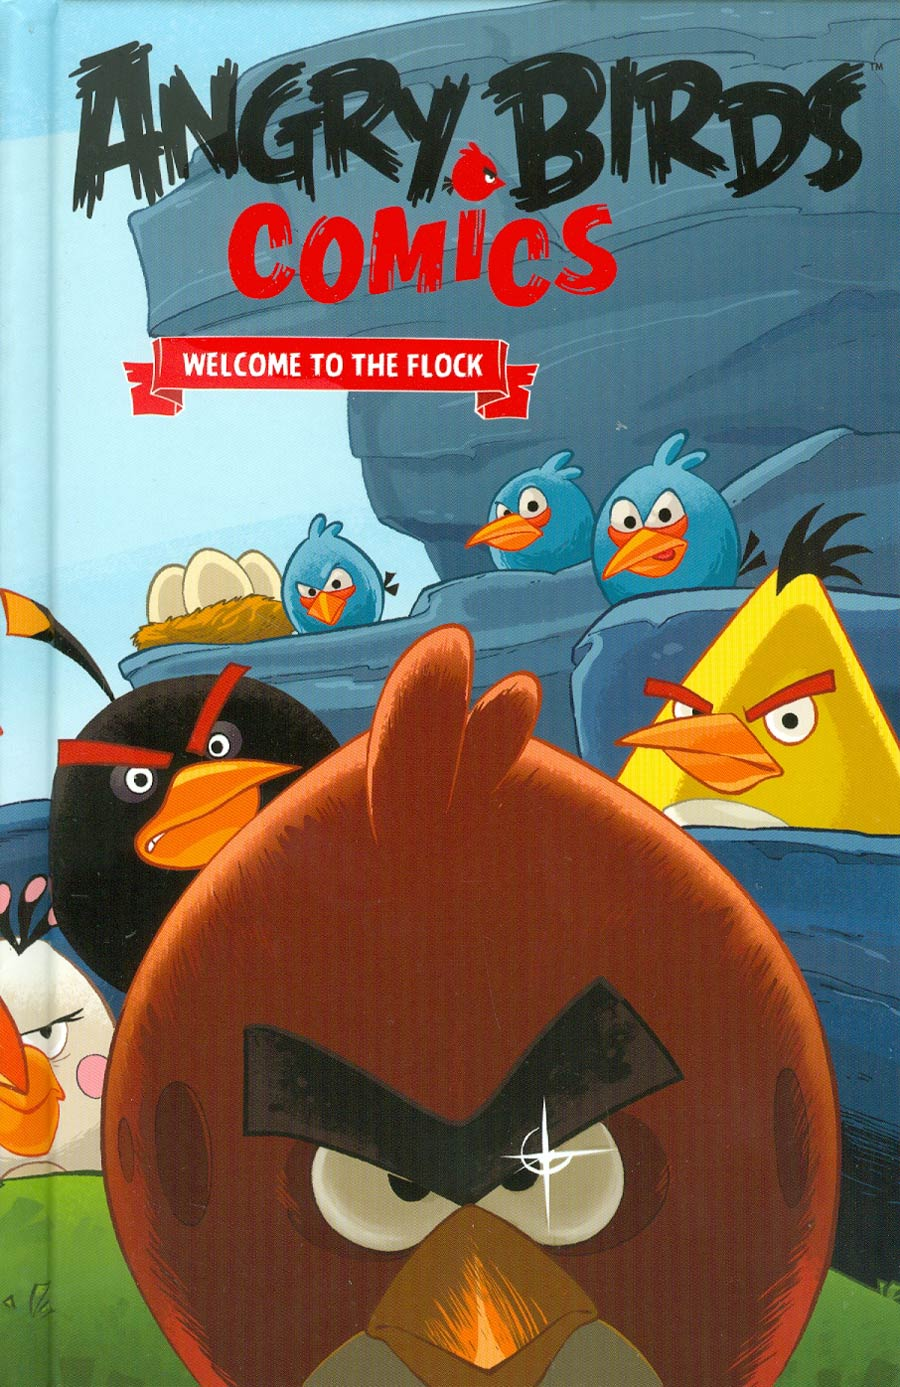 Angry Birds Comics Vol 1 Welcome To The Flock HC